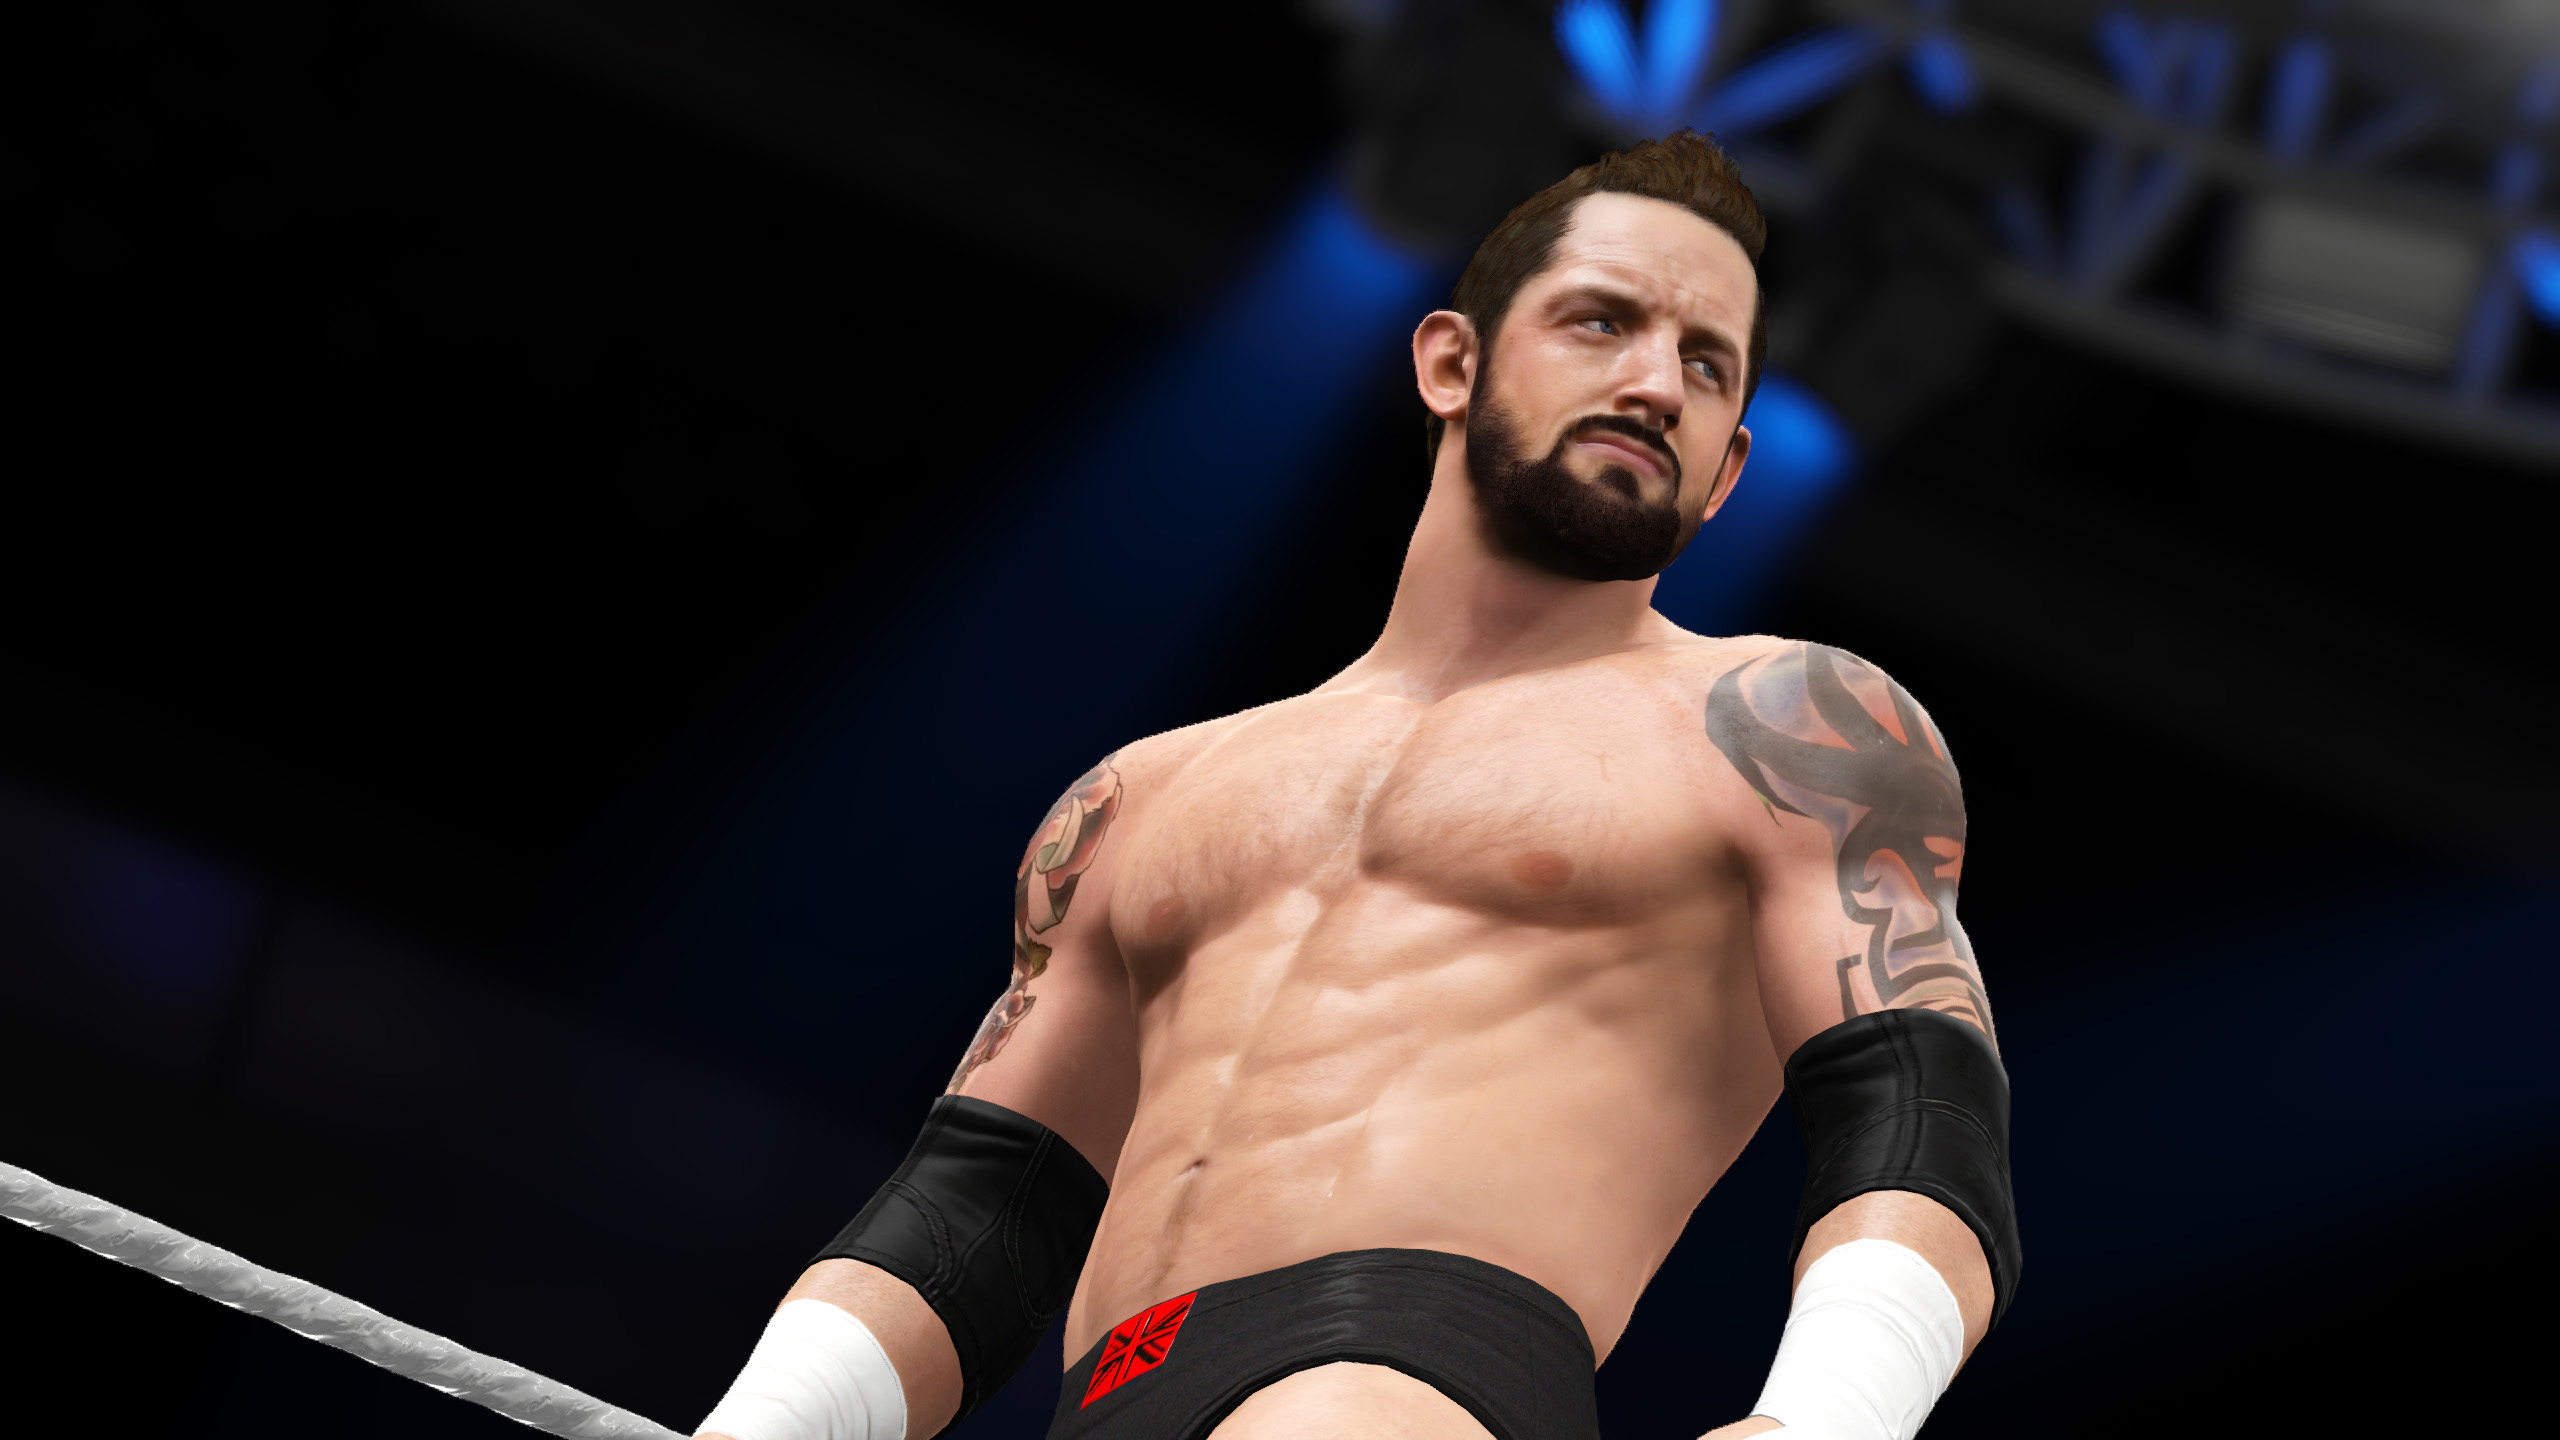 Wwe 2k16 ps4 for 16 wrestlers and their huge homes